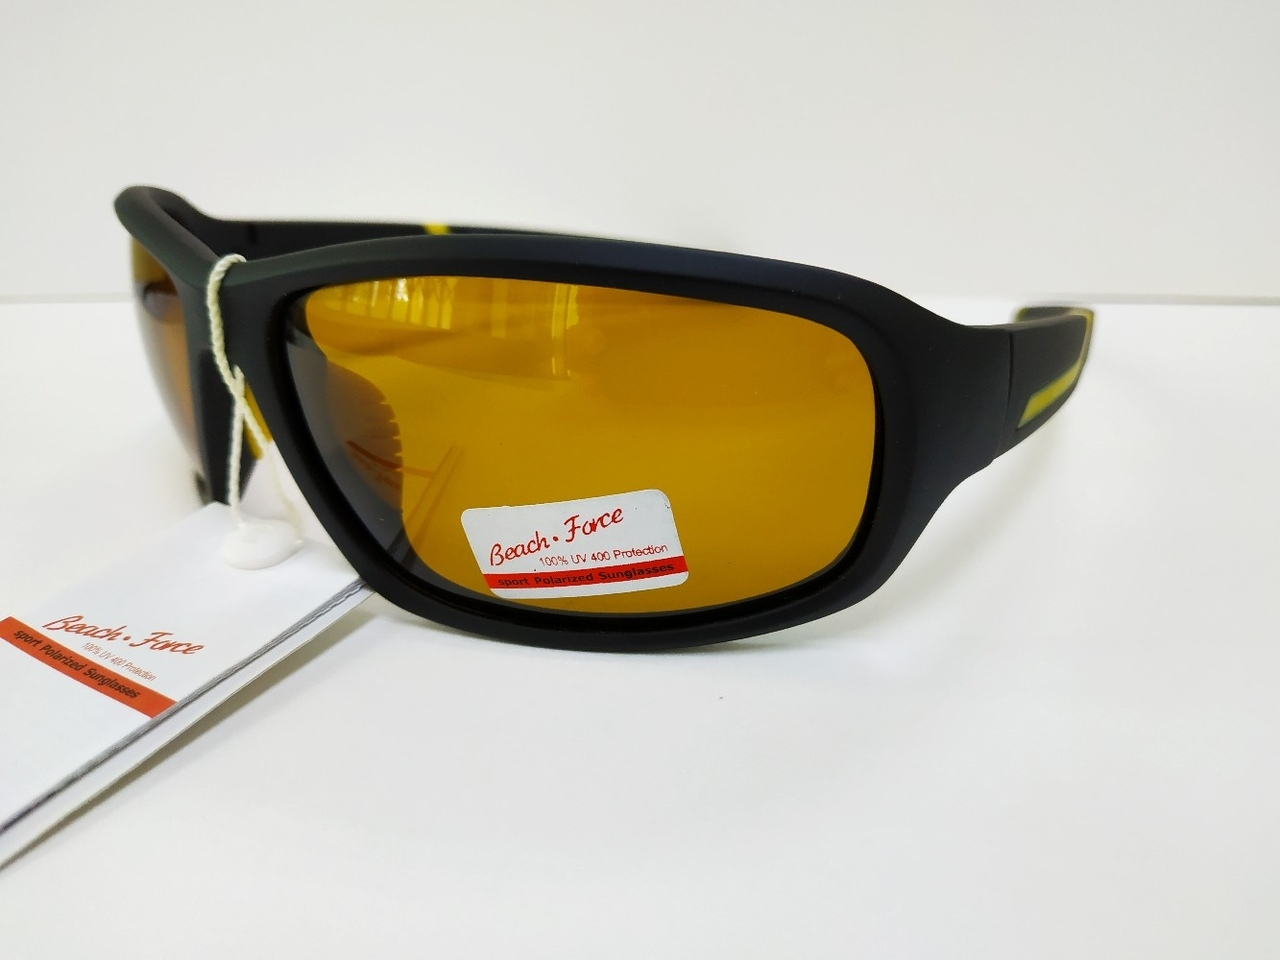 Beach Force polarized 418 <br>